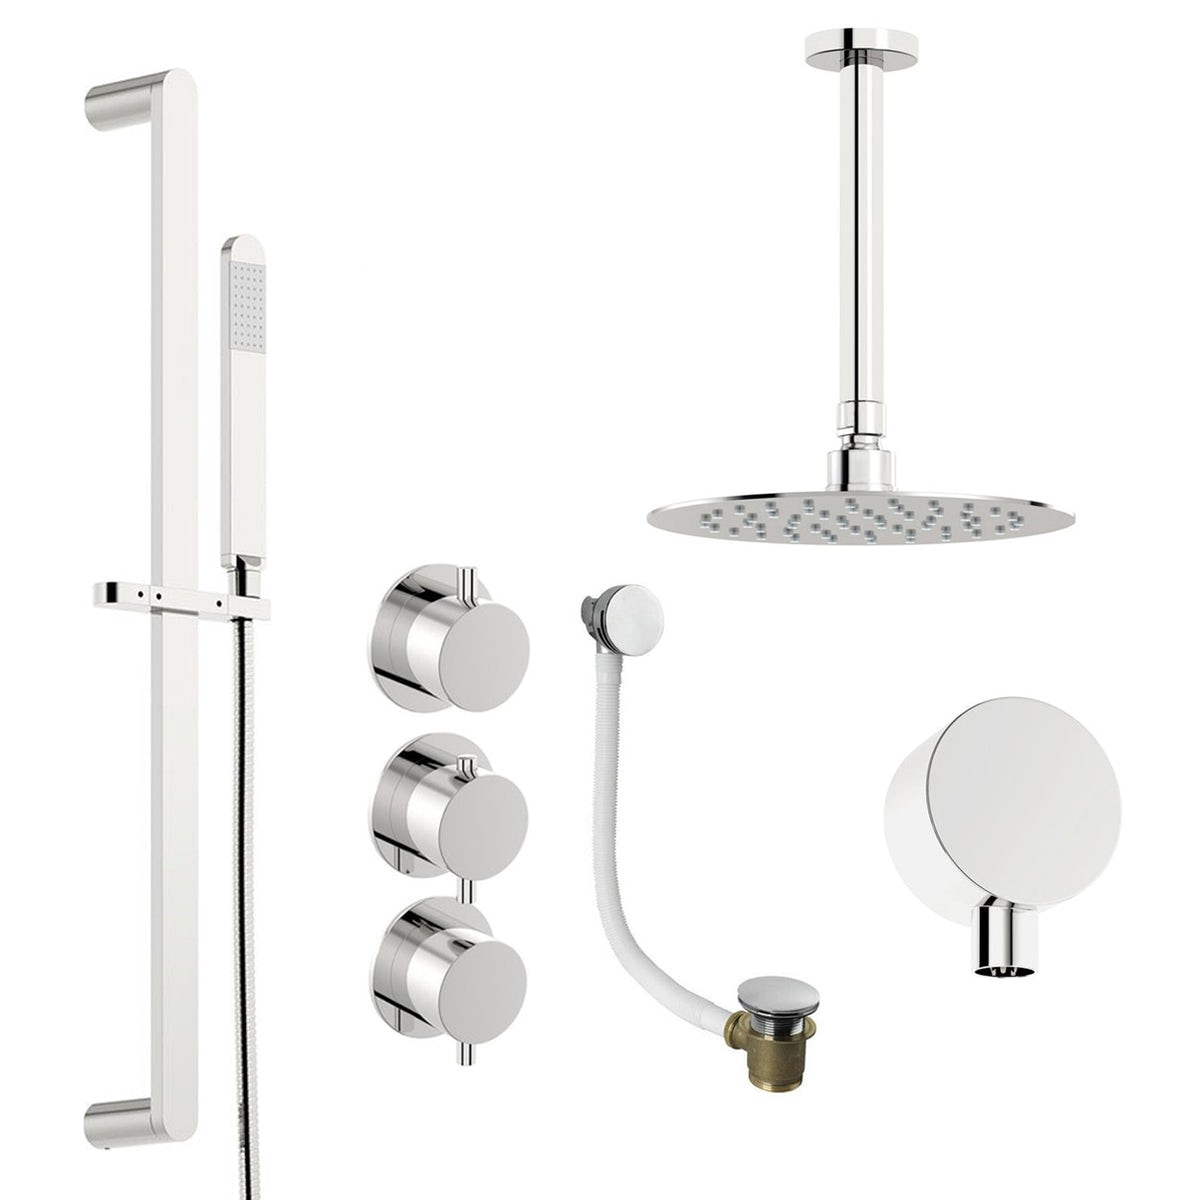 Round 250mm Cool To Touch Shower Kit With Handheld: Mode Hardy Thermostatic Shower Valve With Complete Ceiling